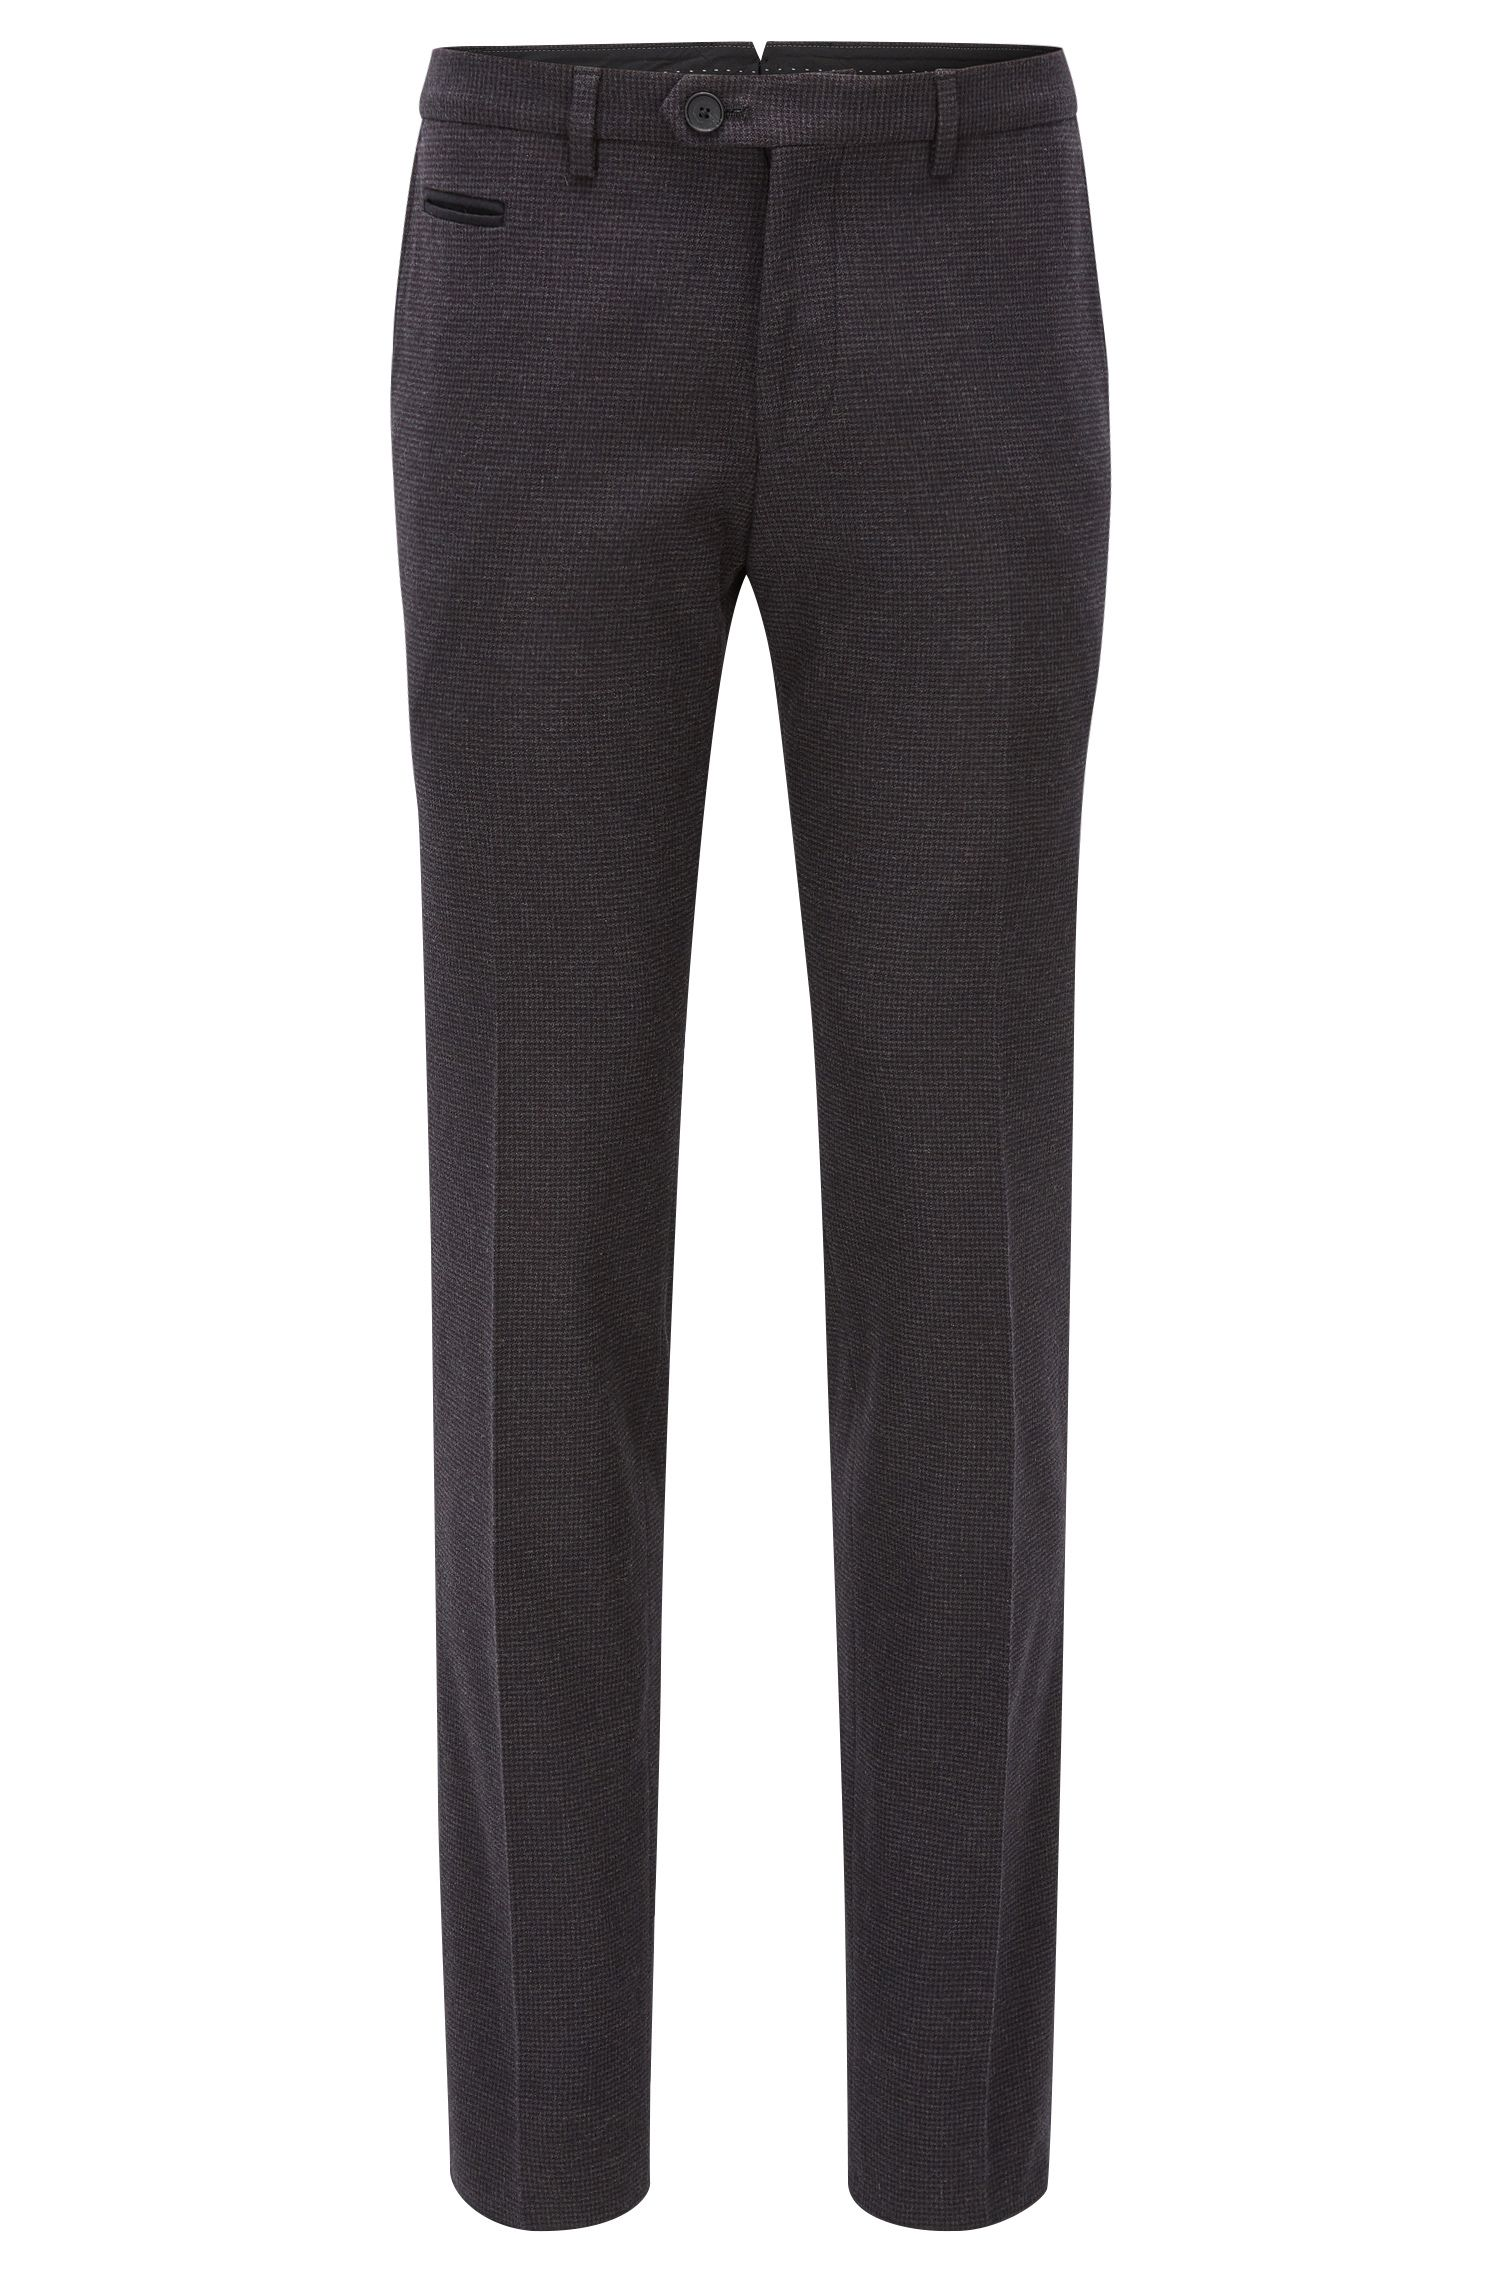 'Wilhelm' | Extra Slim Fit, Stretch Cotton Dress Pants